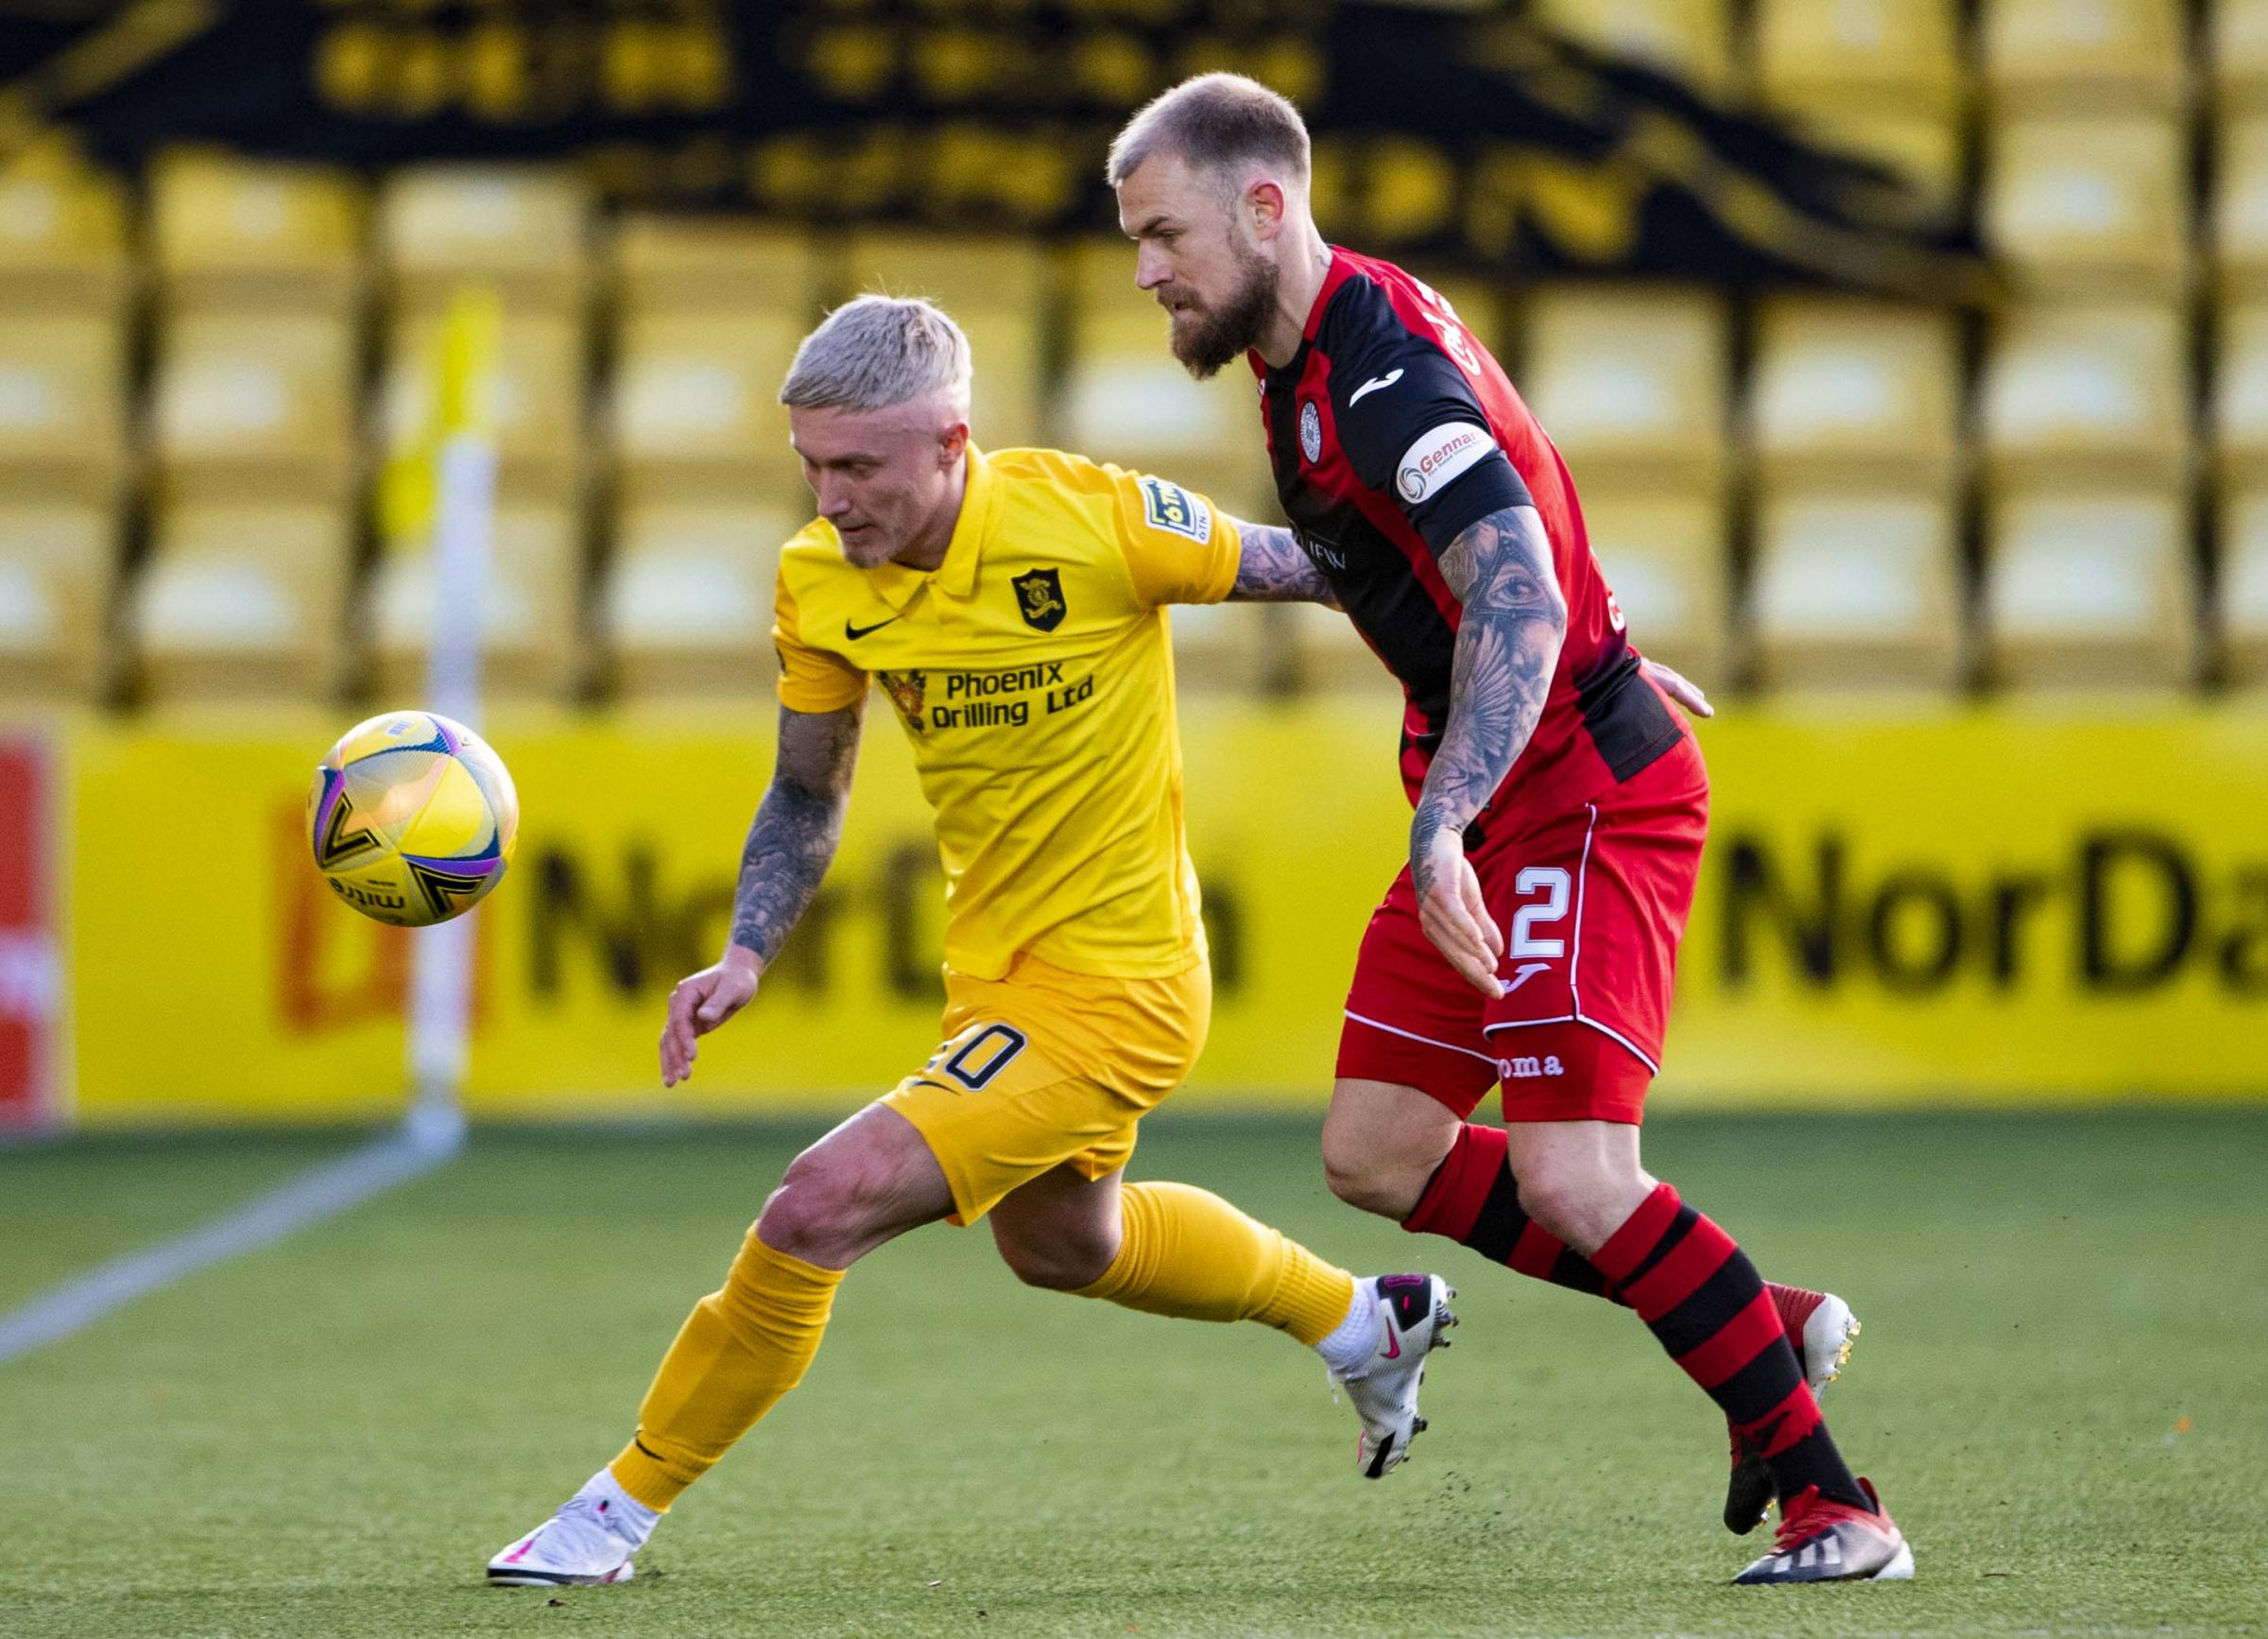 Livingston vs St Mirren live stream: How to watch Betfred Cup semi-final showdown